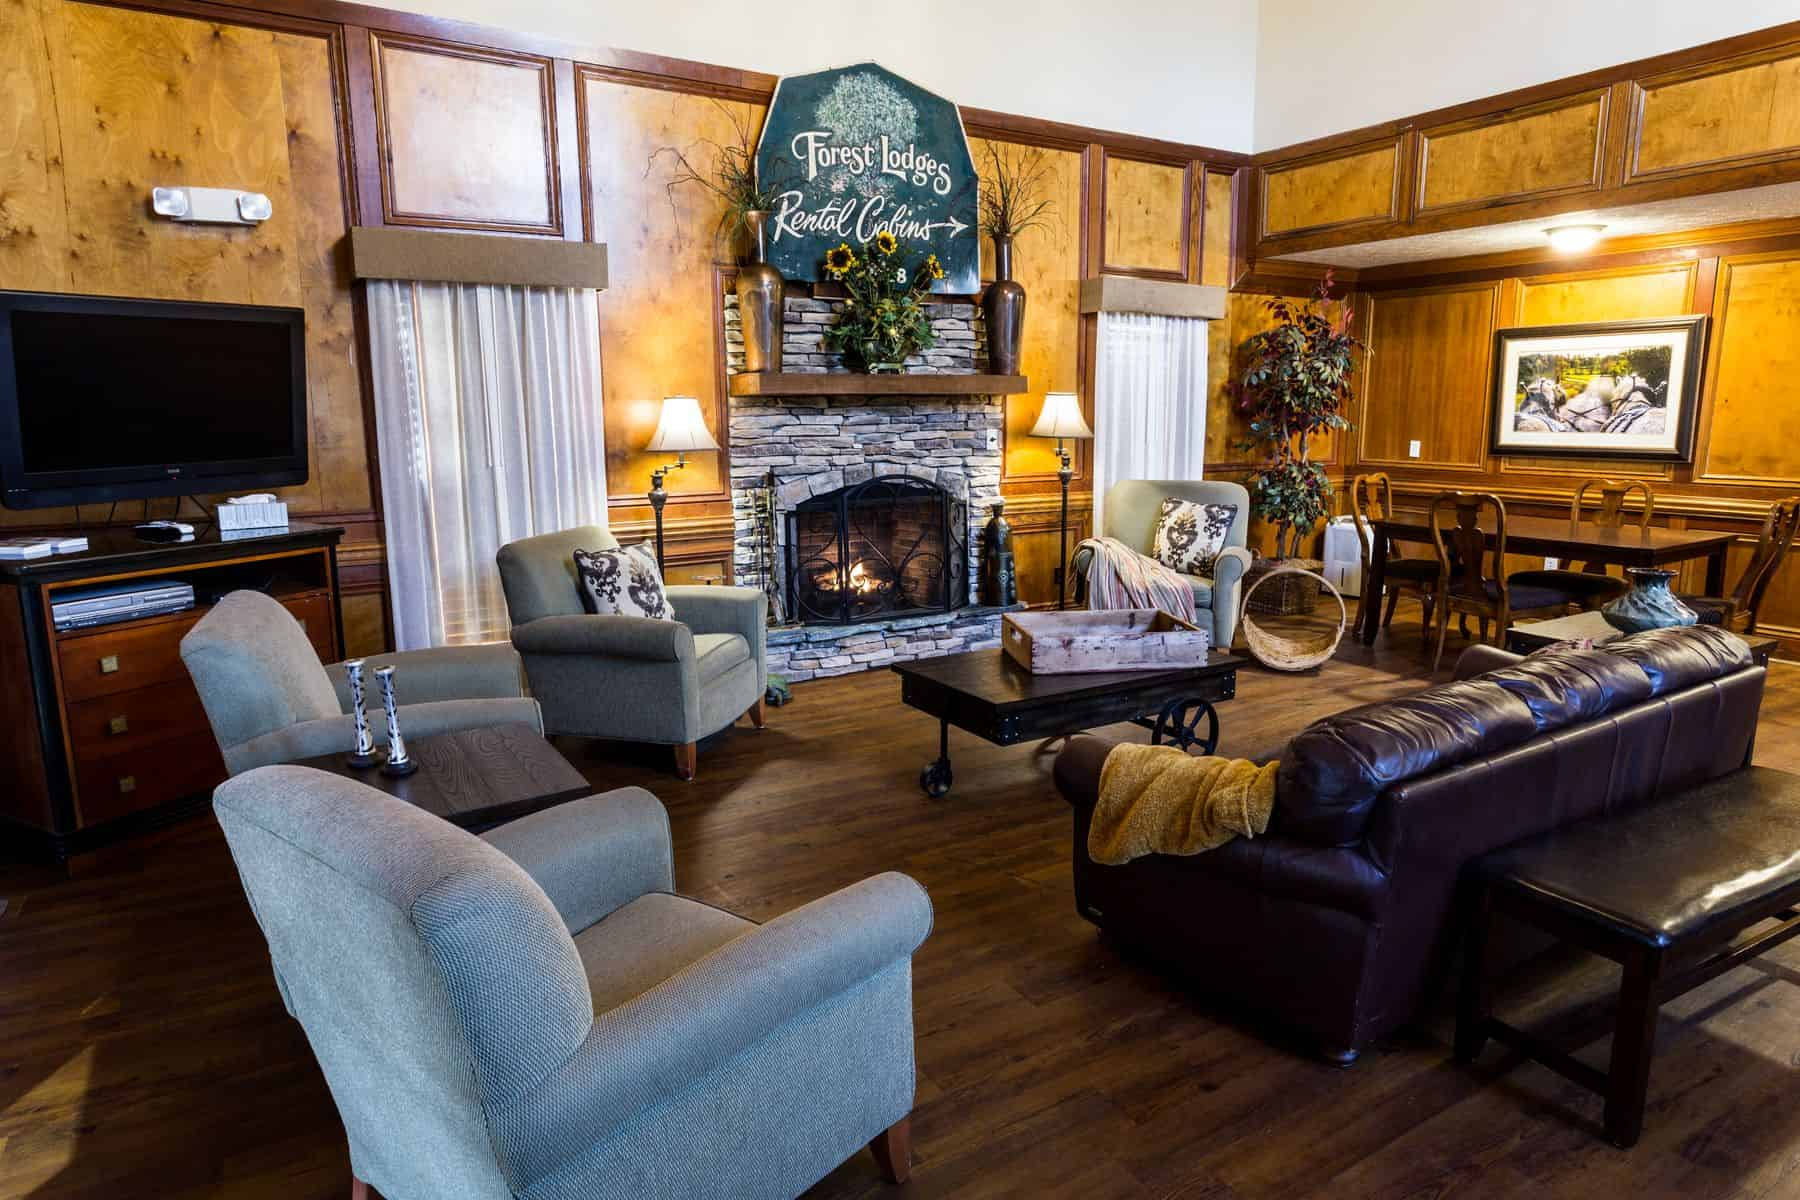 hotel rooms & suites - north georgia at forrest hills resort in